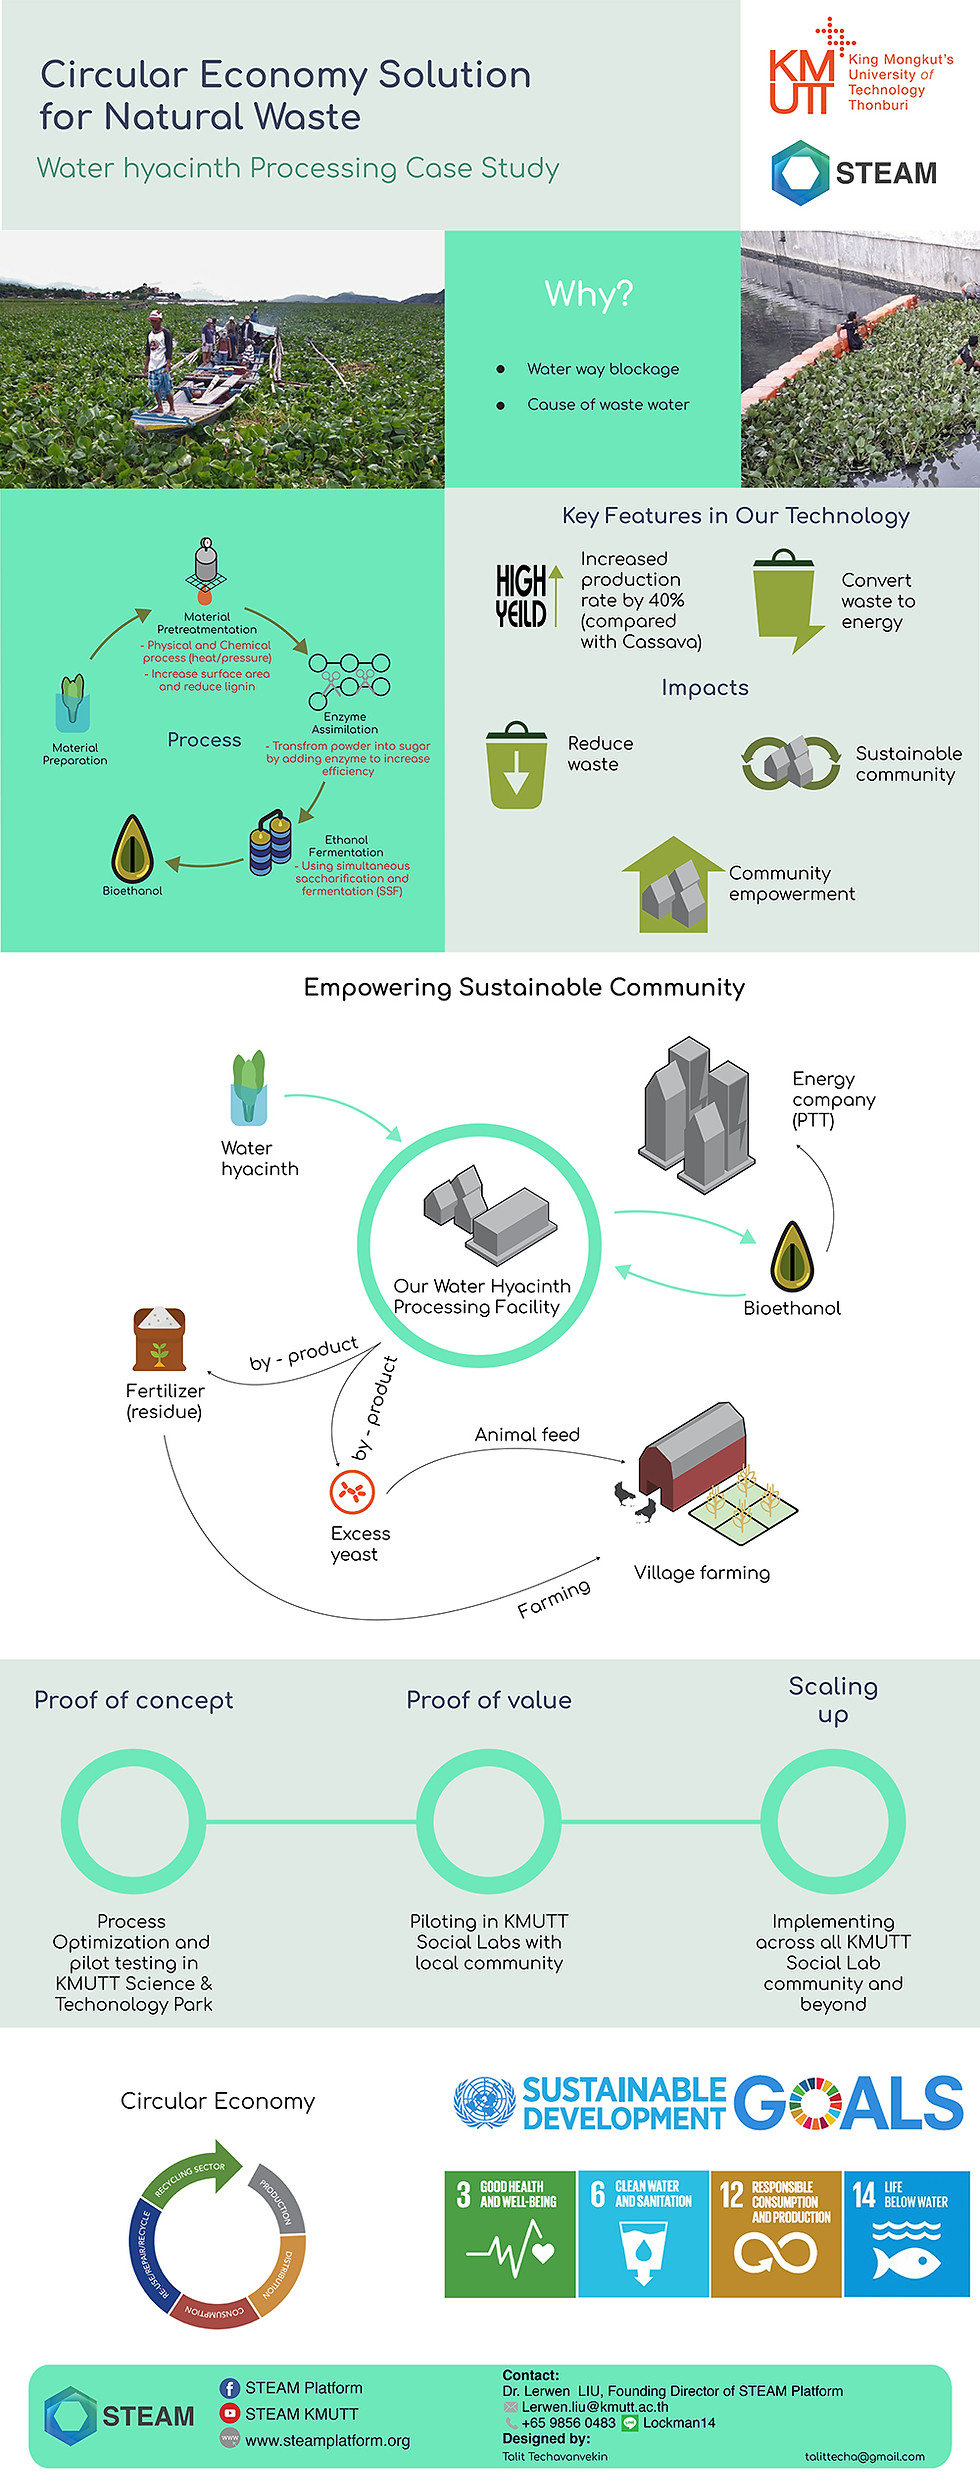 Circular Economy Solution for Natural Waste